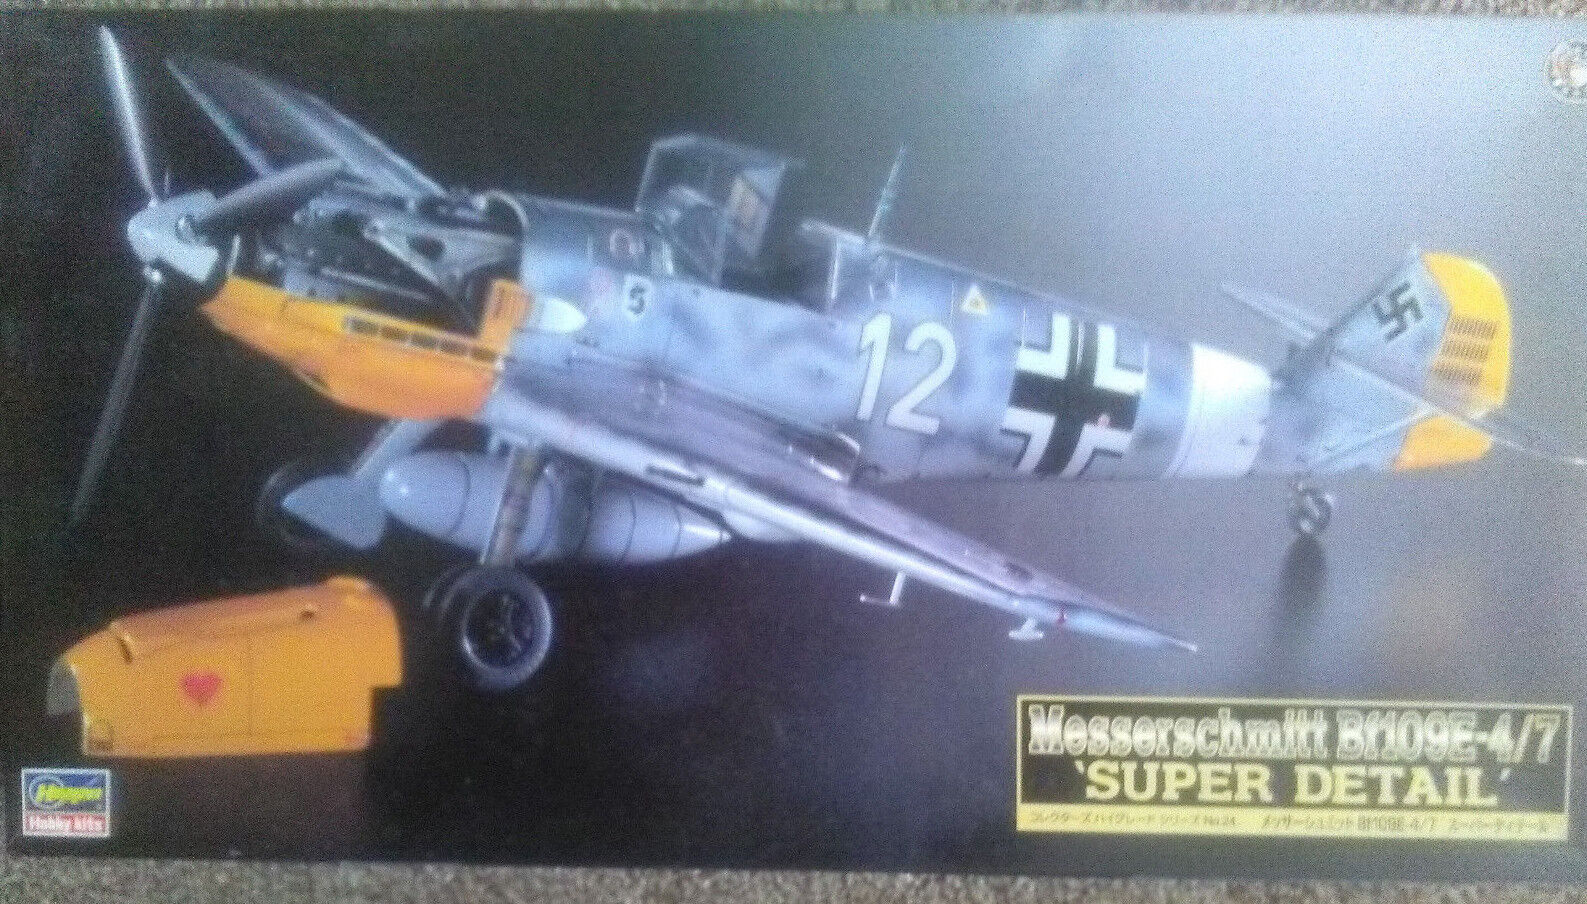 HASEGAWA 1 48 MESSESCHMITT BF109E 4 7  SUPER DETAIL (RESIN & PHOTO ETCHED PARTS)